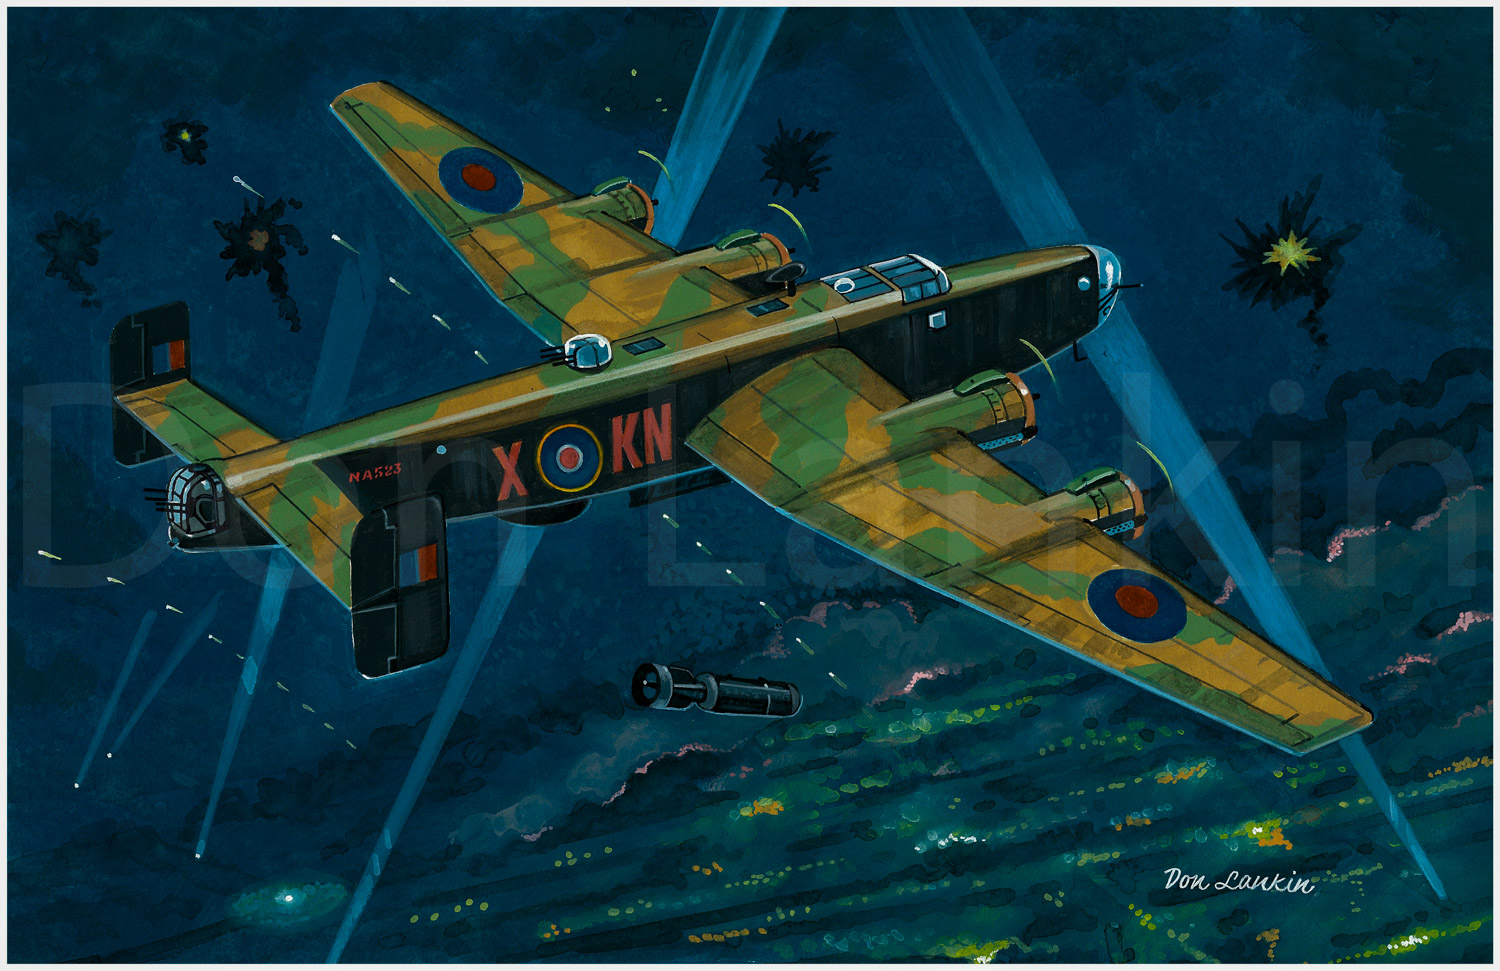 Handley Page Halifax Mk.III, KN-X, 77 Sqn. R.A.F. 4 Group